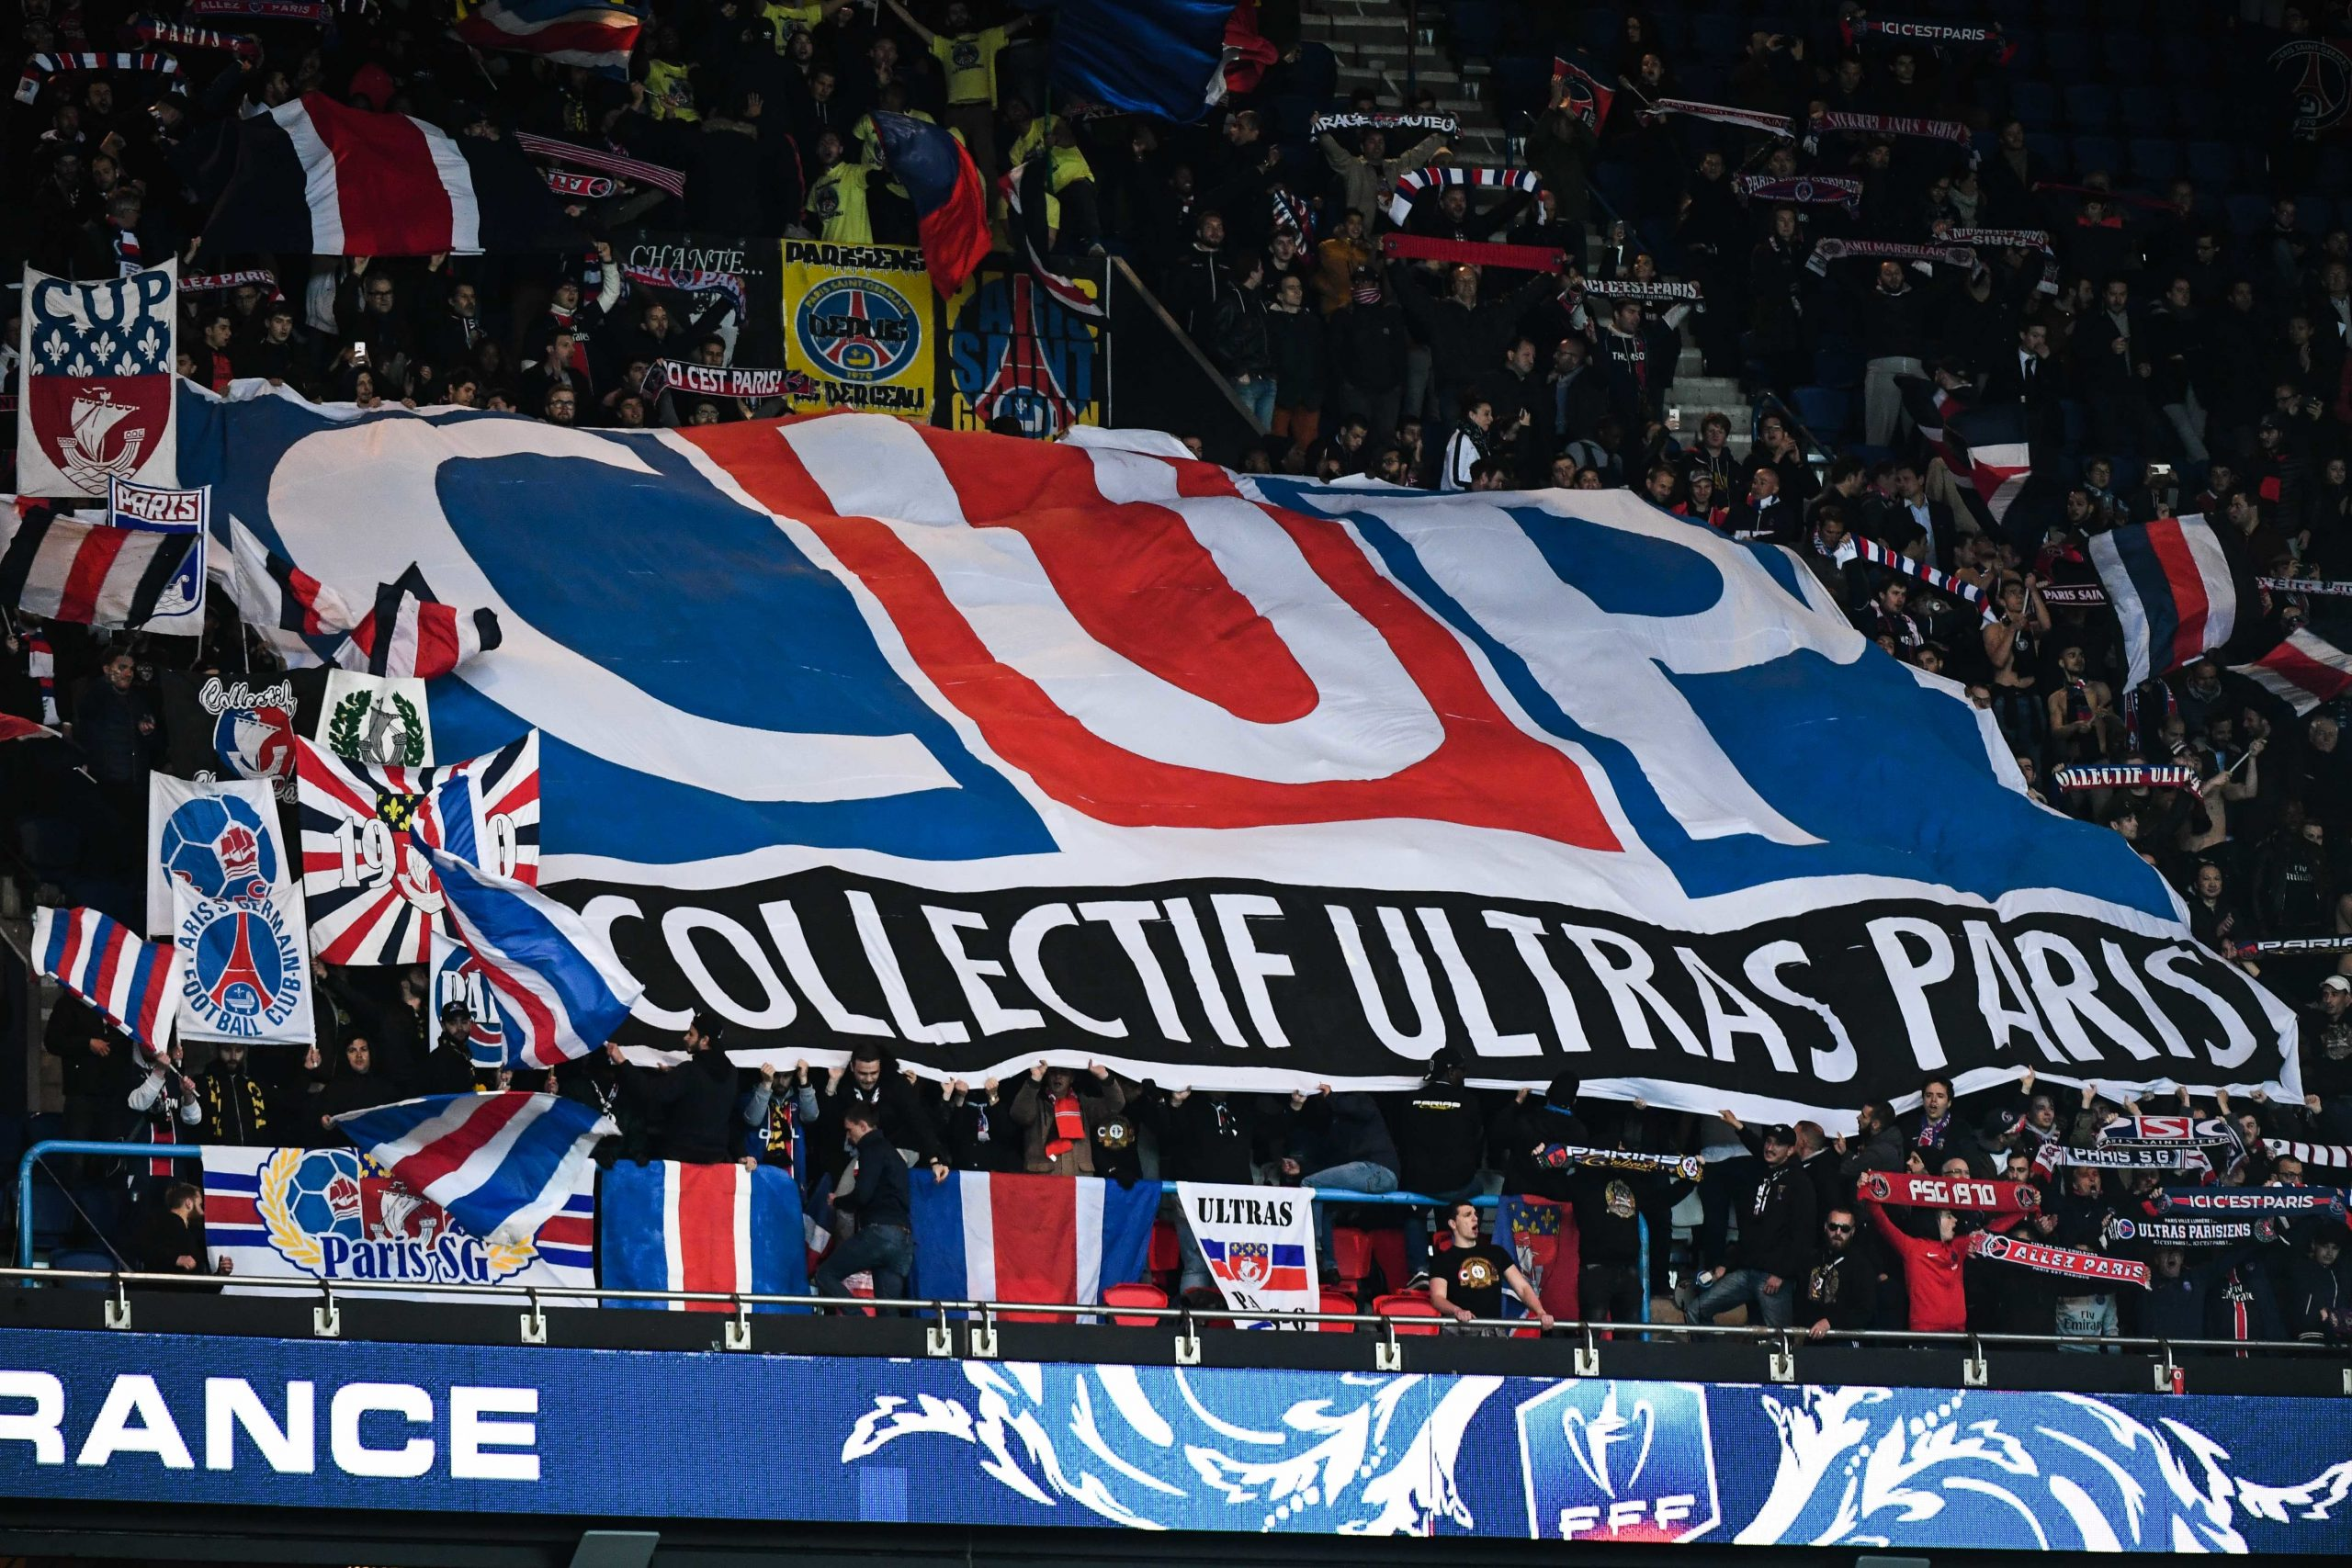 PSG/Barcelone - Le Collectif Ultras Paris étudierait 2 actions possibles